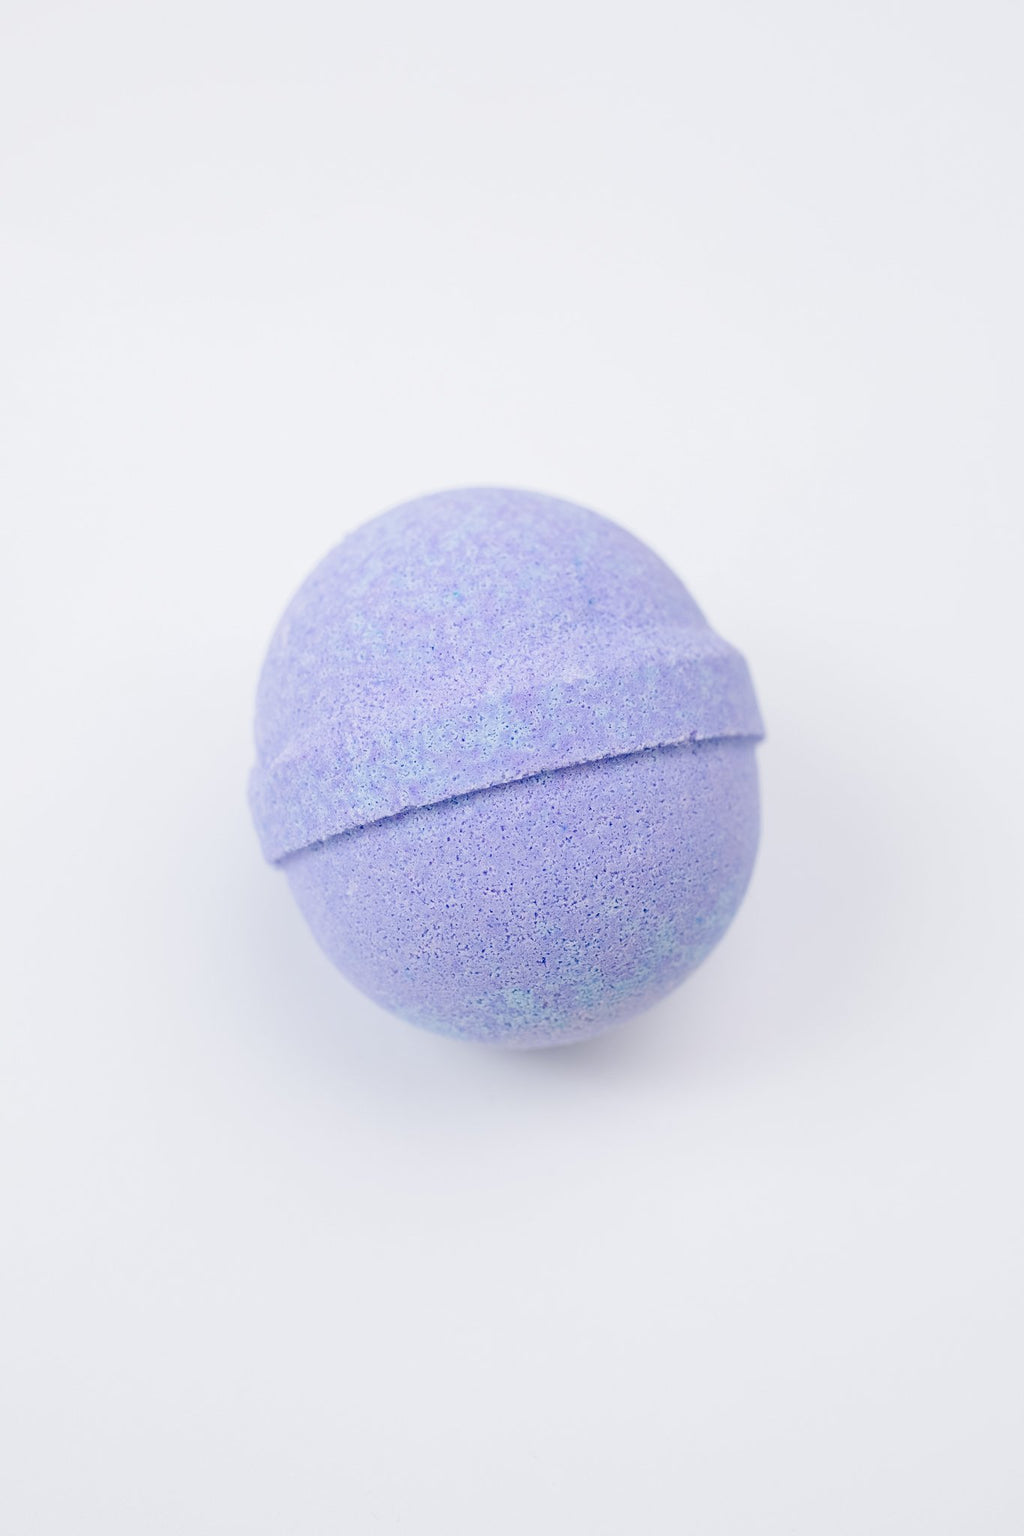 Cottage Garden Bath Bombs in Sugar Plum Fairy-11-19-2020, Accessories, BFCM2020, Group A, Group B, Group C, Group X, Holiday Gifts-Womens Artisan USA American Made Clothing Accessories